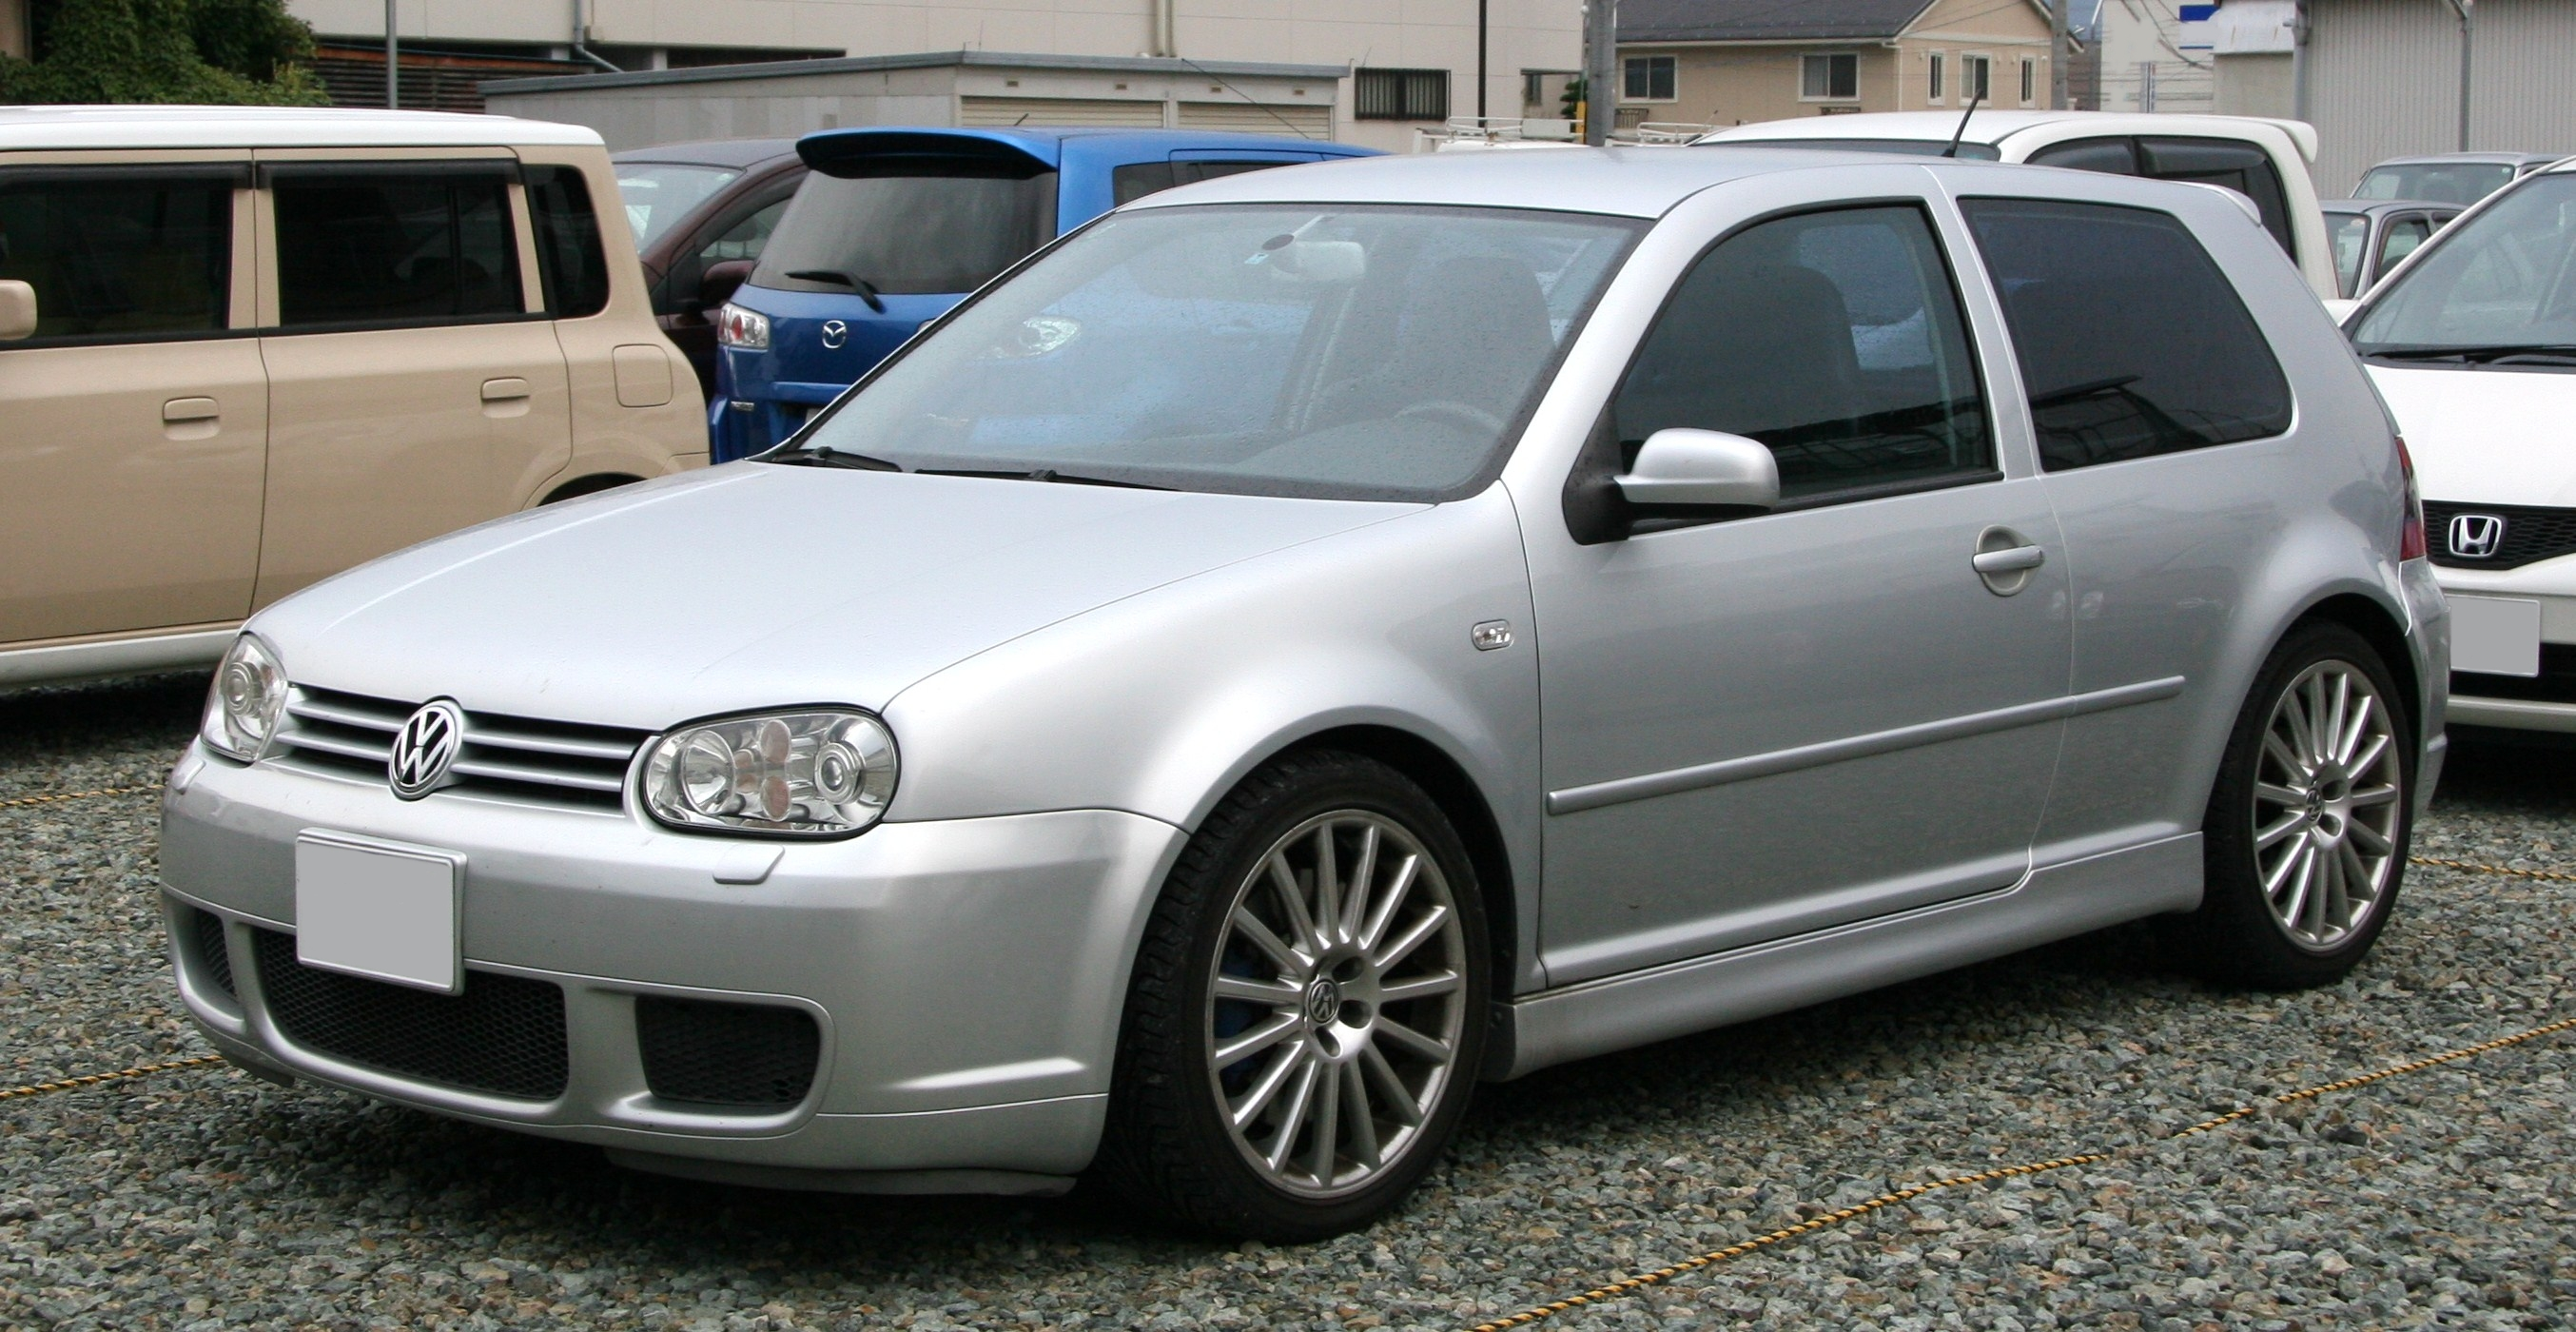 vw golf 4 r32 technical details history photos on better. Black Bedroom Furniture Sets. Home Design Ideas